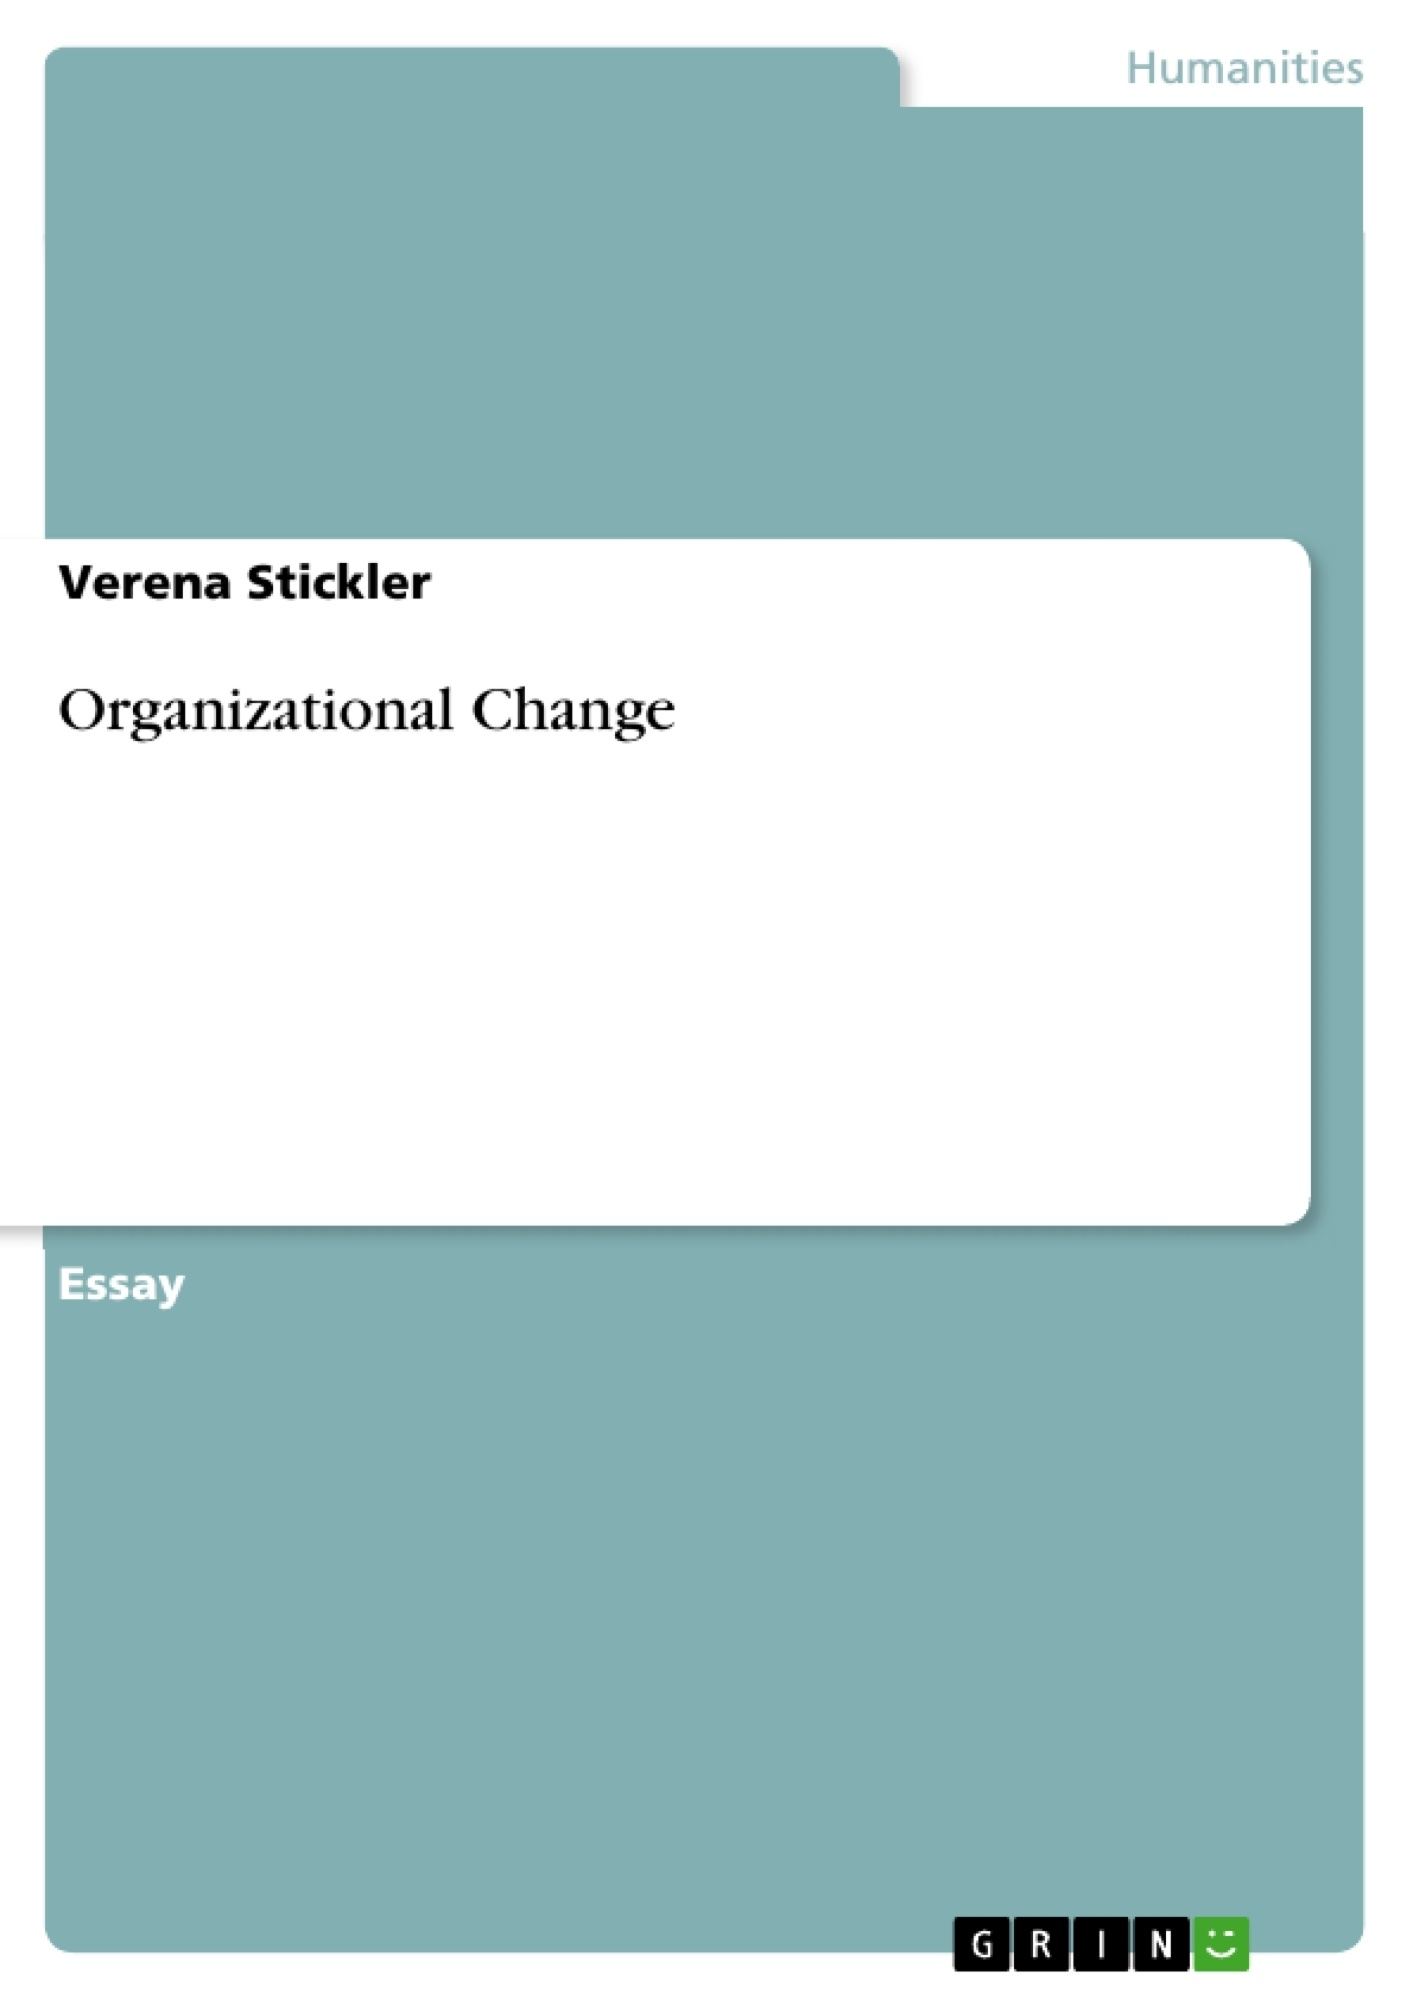 Title: Organizational Change